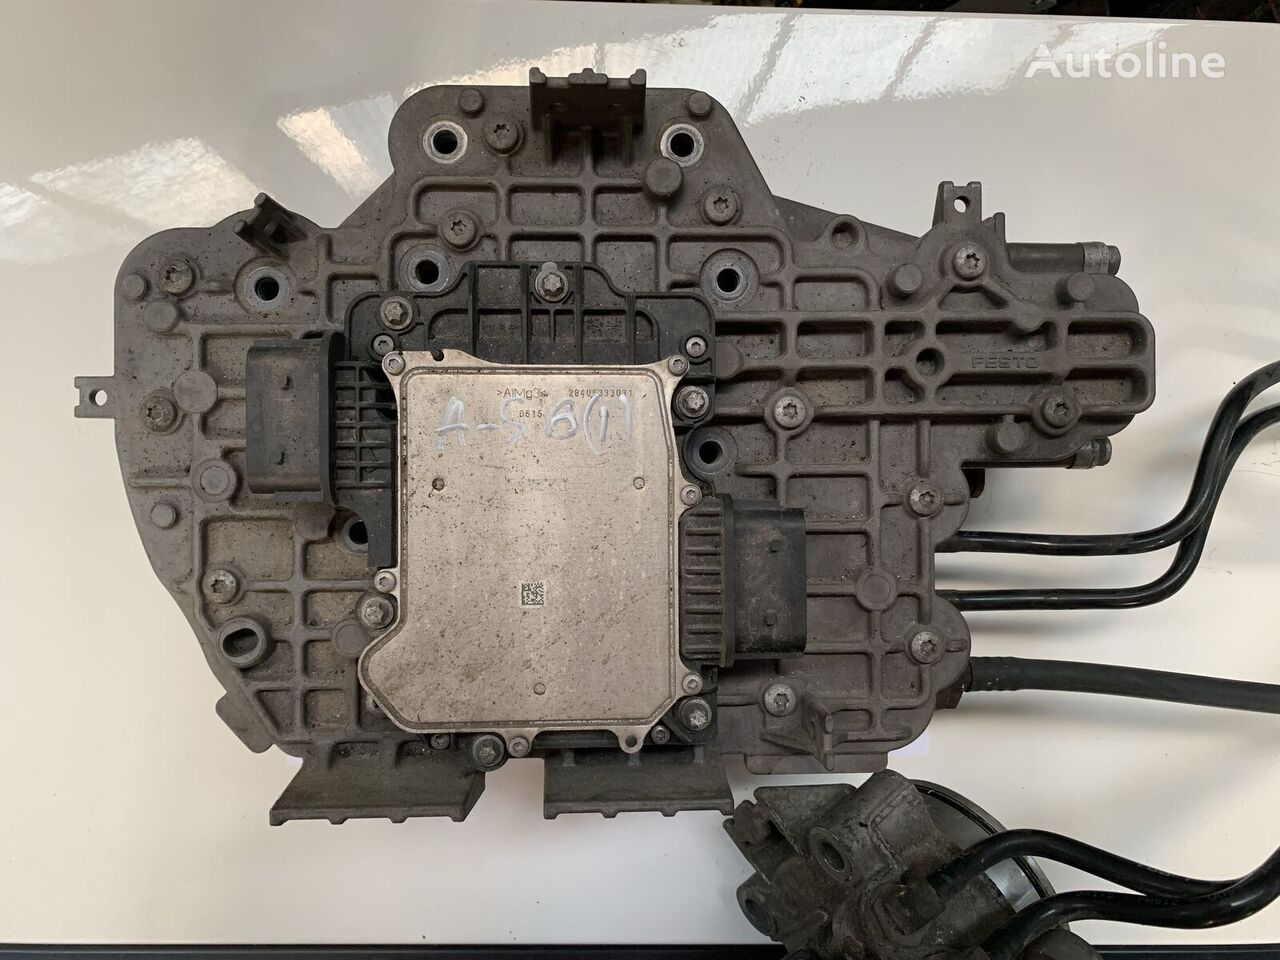 MERCEDES-BENZ A9602608663 other transmission spare part for MERCEDES-BENZ ACTROS tractor unit